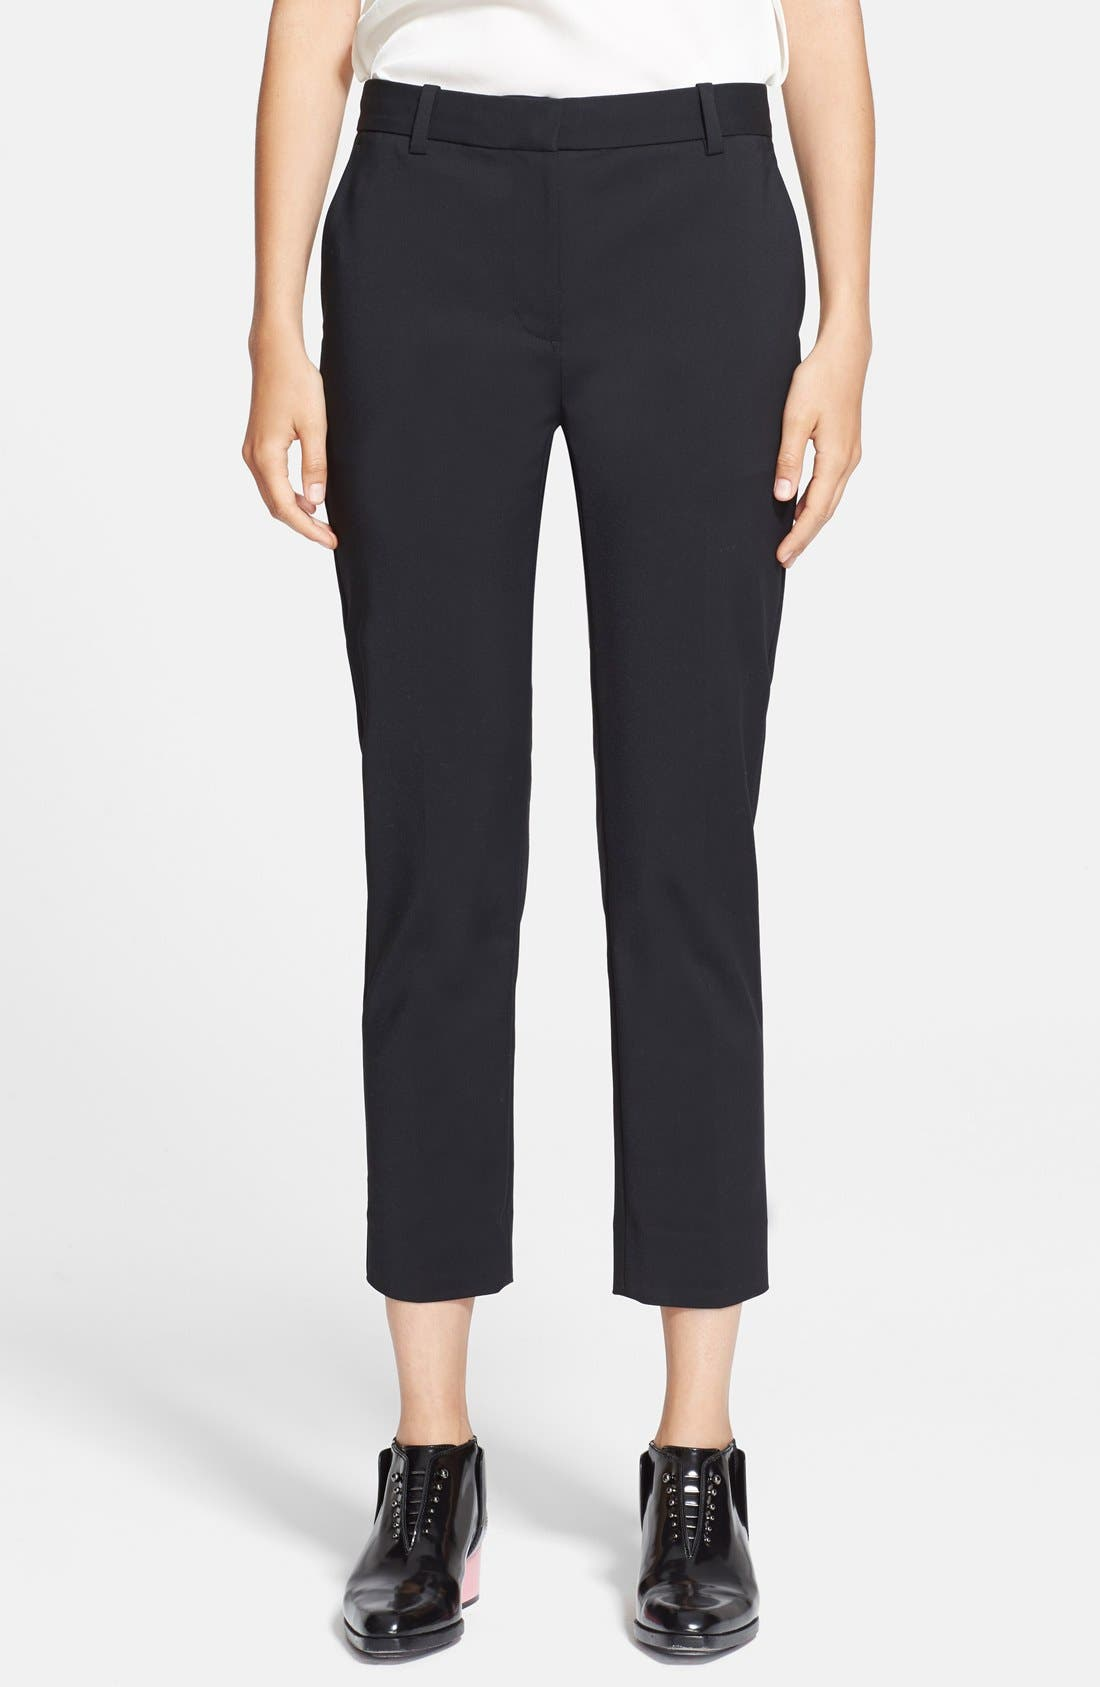 3.1 Phillip Lim Crop Pencil Pants